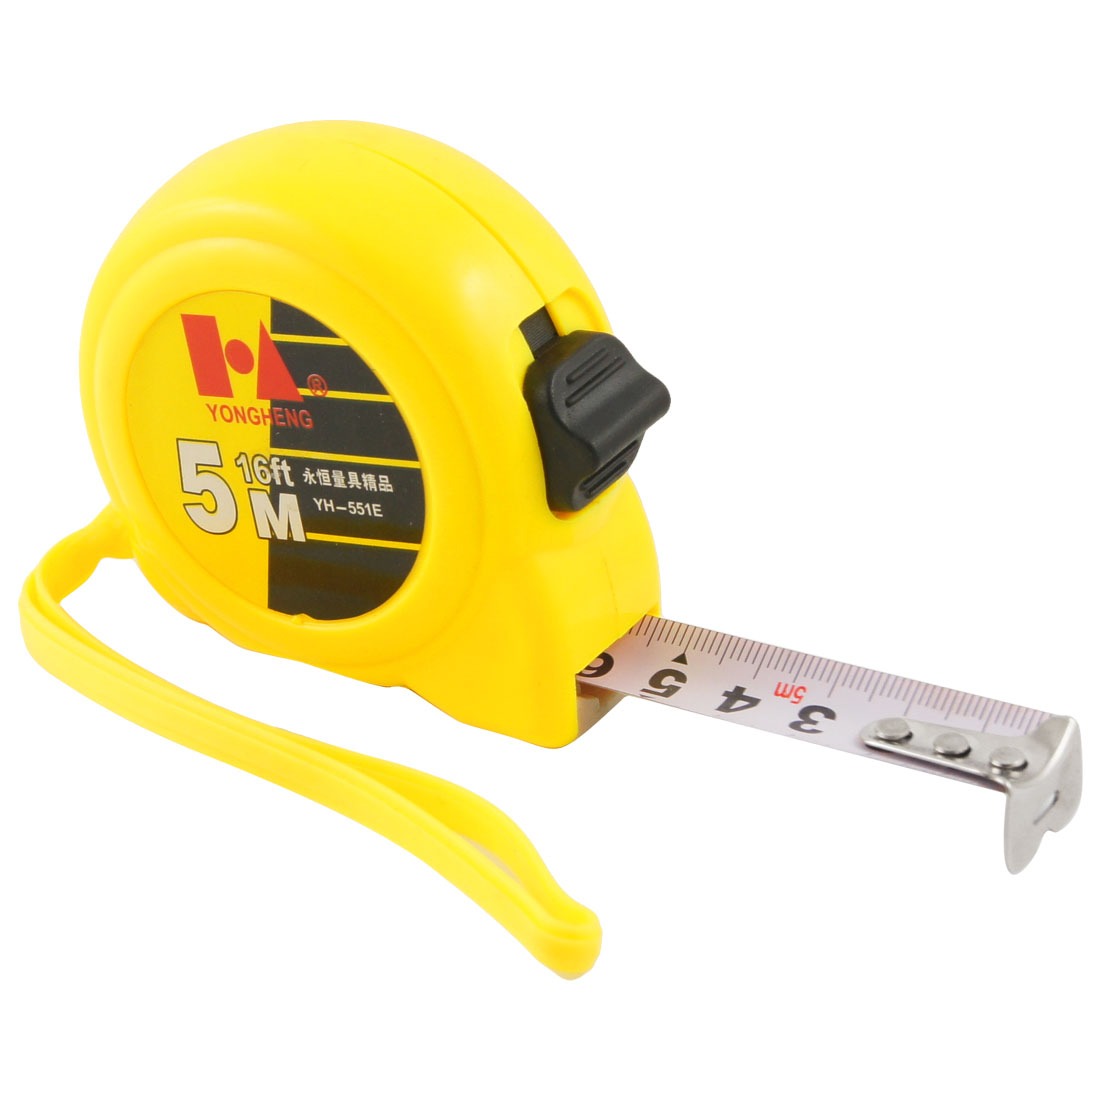 Yellow Case 5 Meters Length Retractable Metric Ruler Tape Measuring Tool